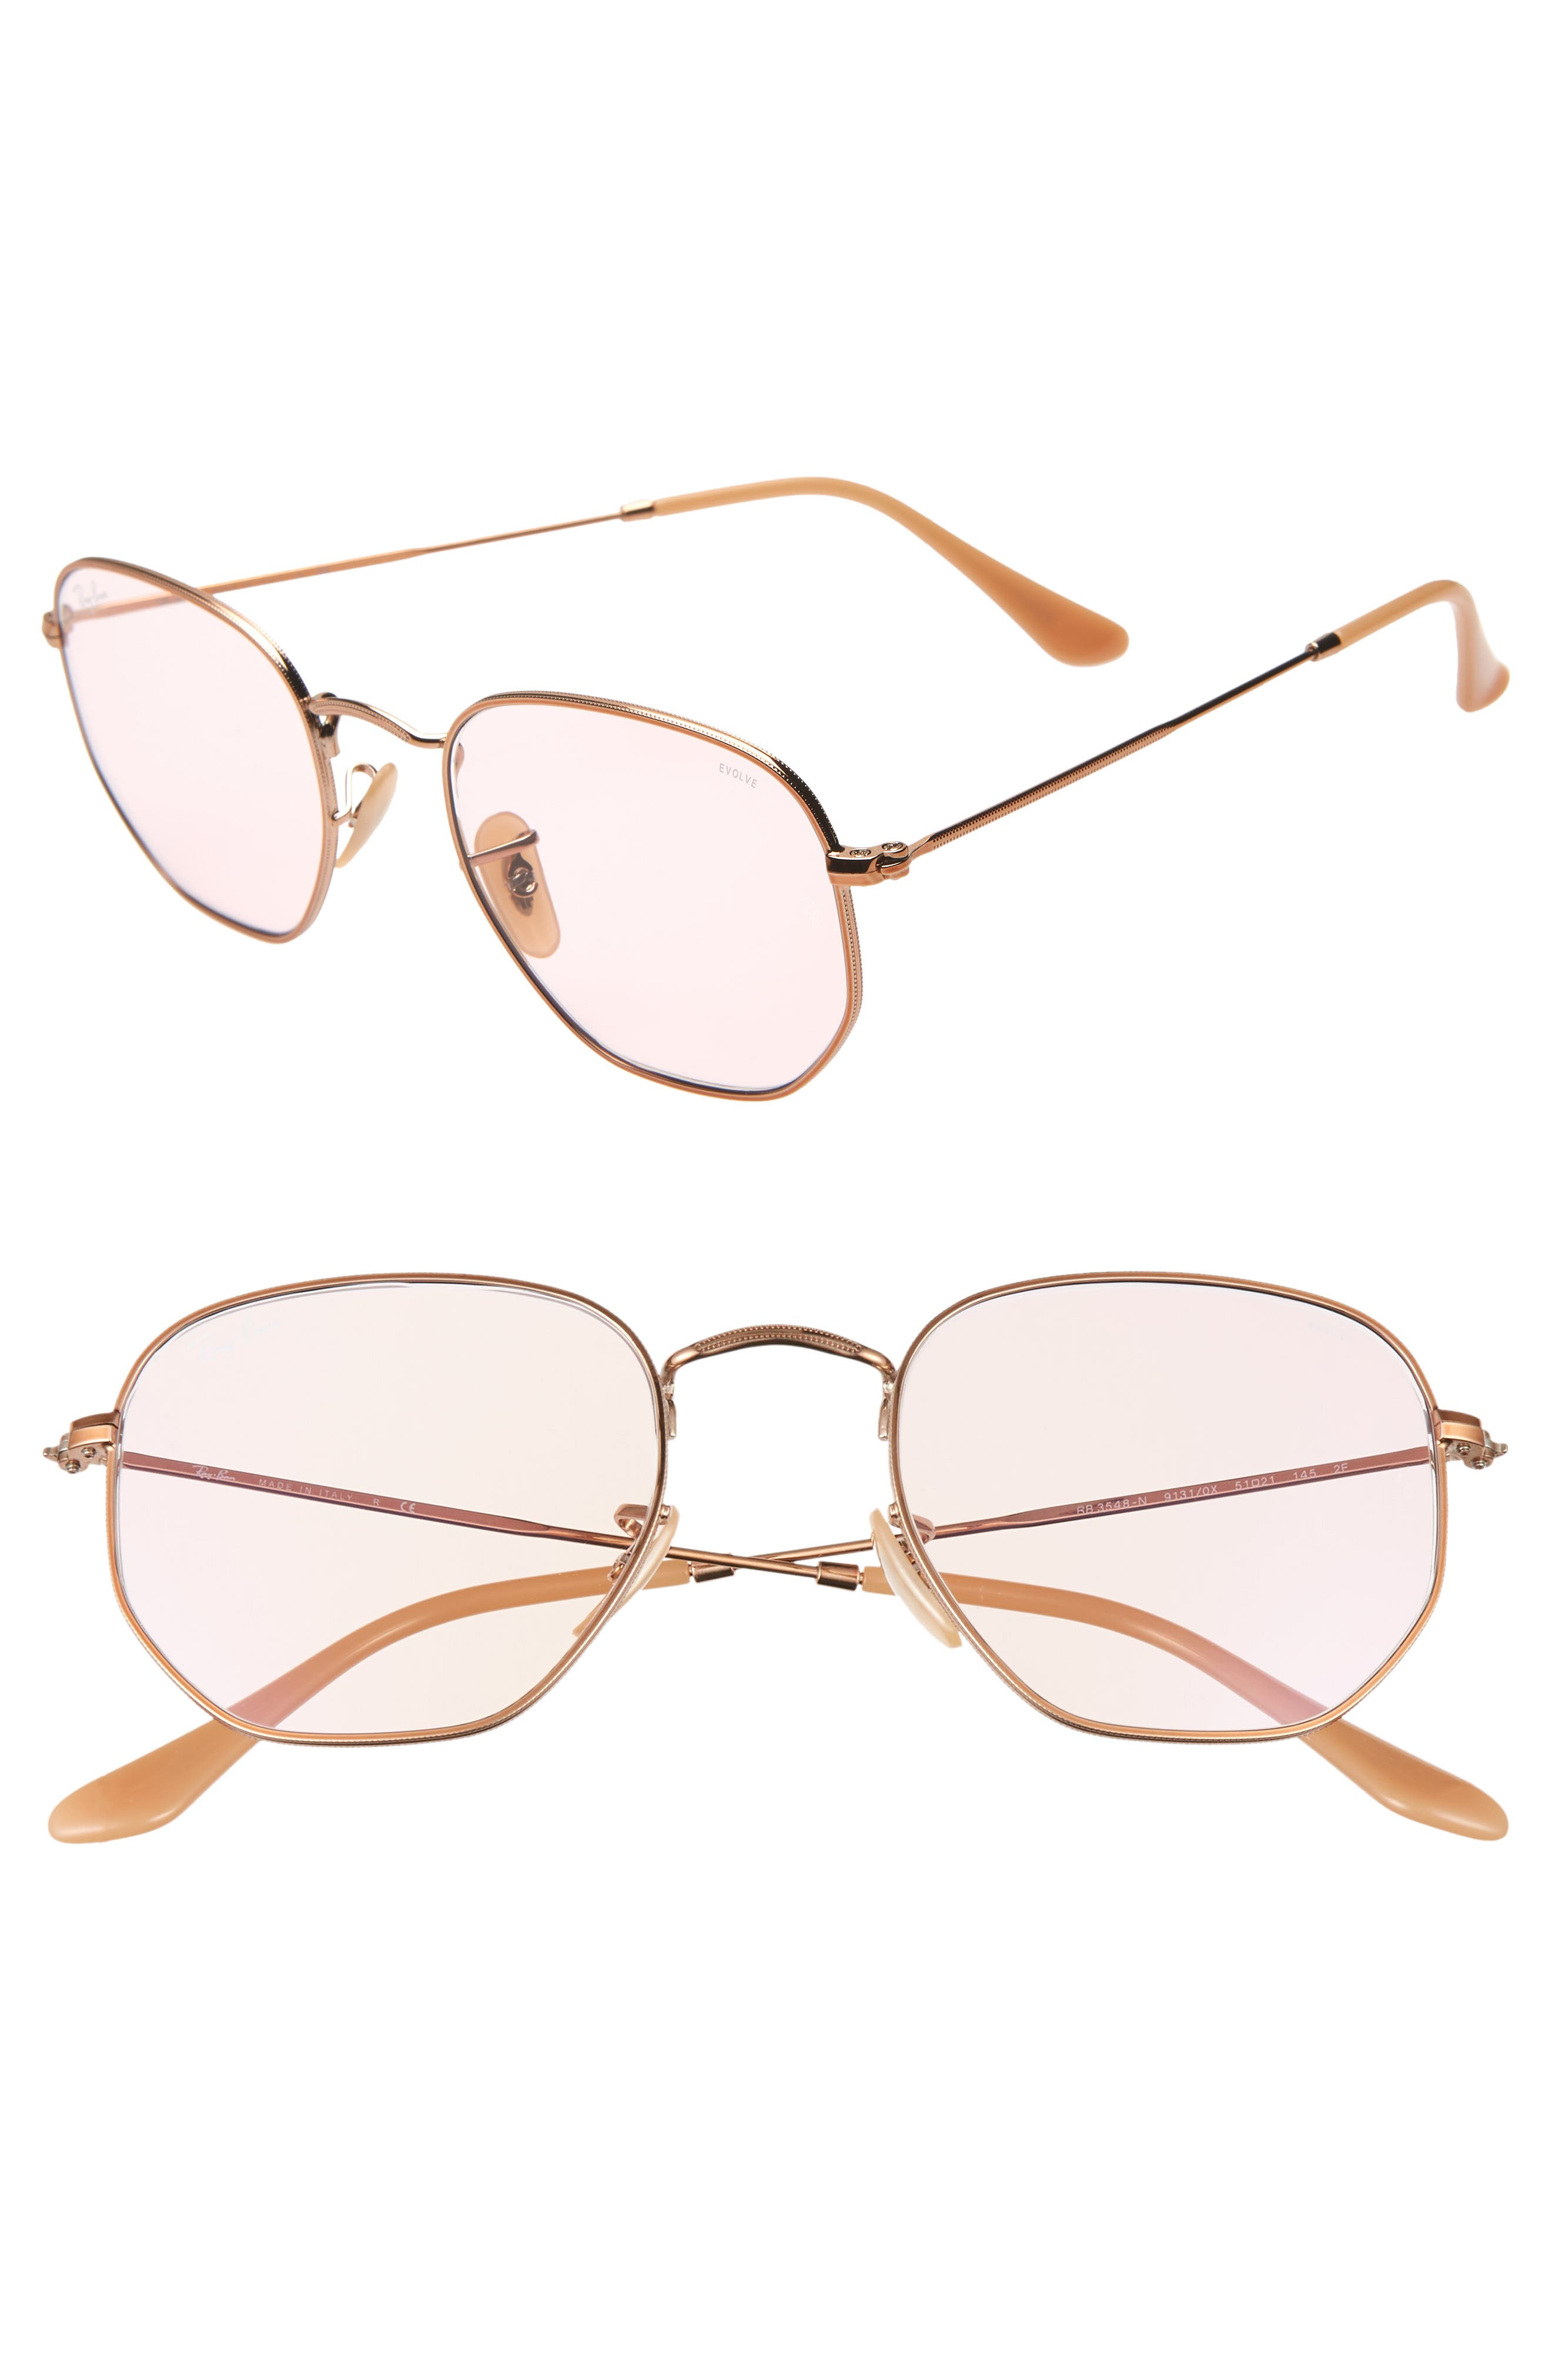 Ray-Ban 5m Evolve Photochromic Hexagon Sunglasses - Gold/ Pink Solid